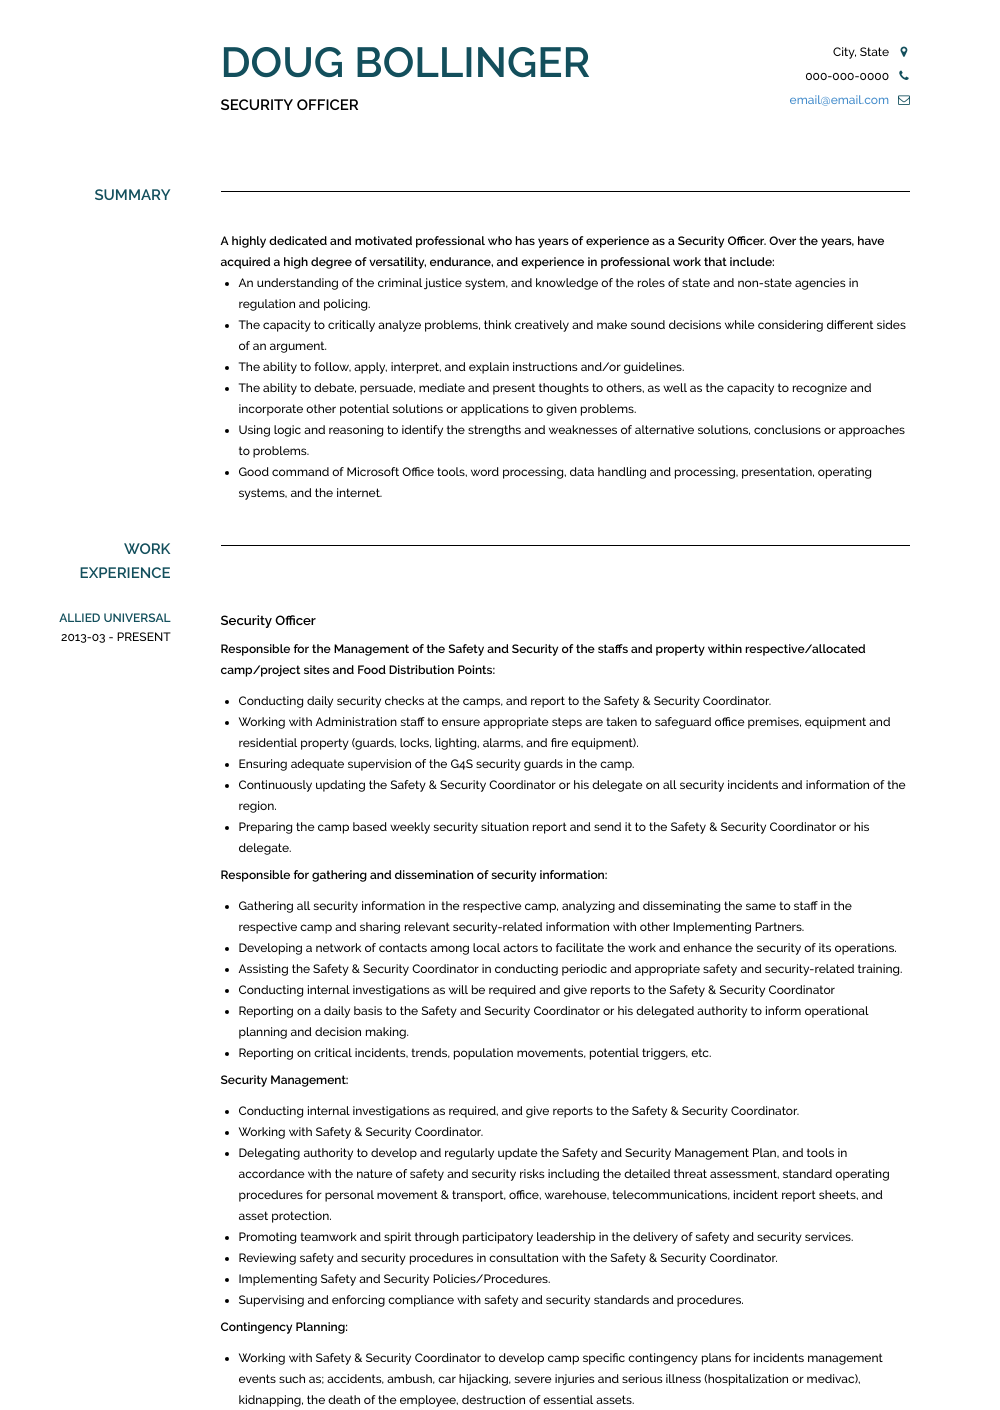 Security Officer Resume Samples Templates Visualcv